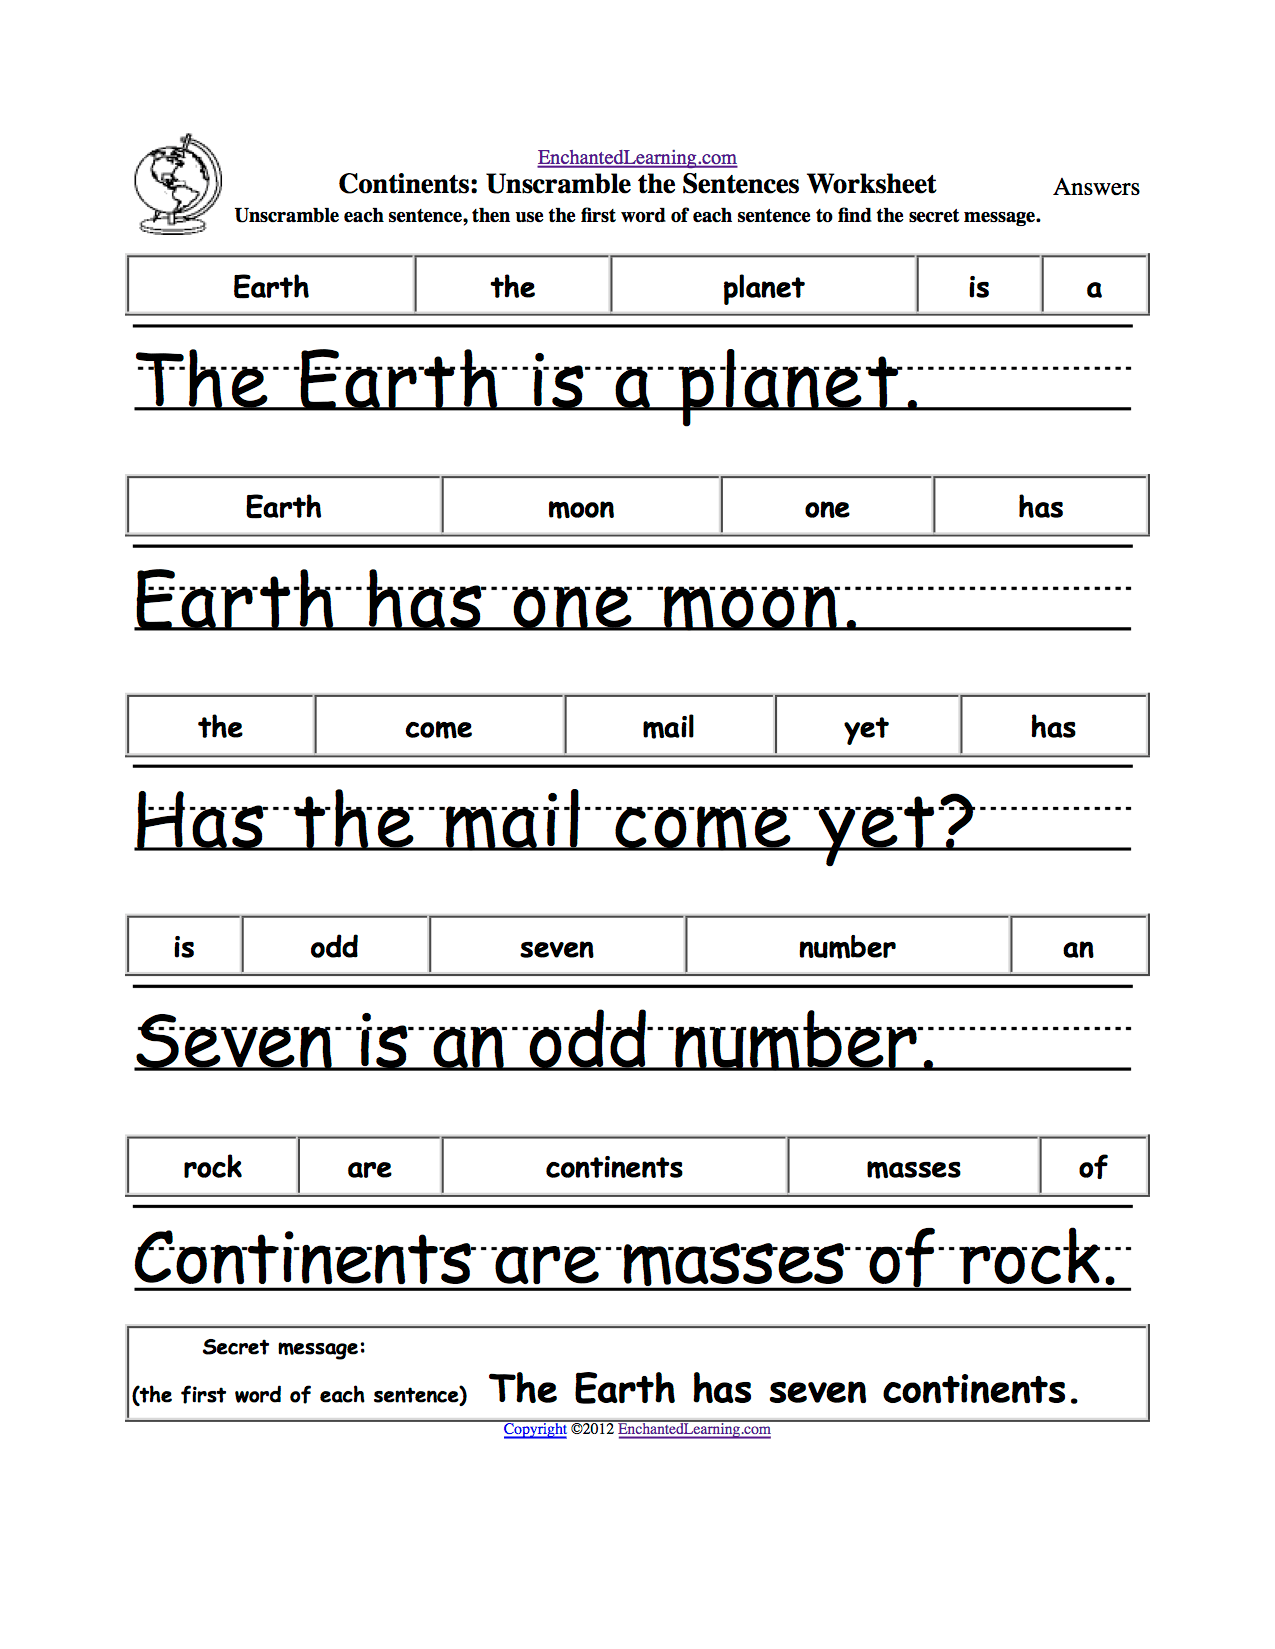 Free Printable Science Worksheets For 3rd Grade